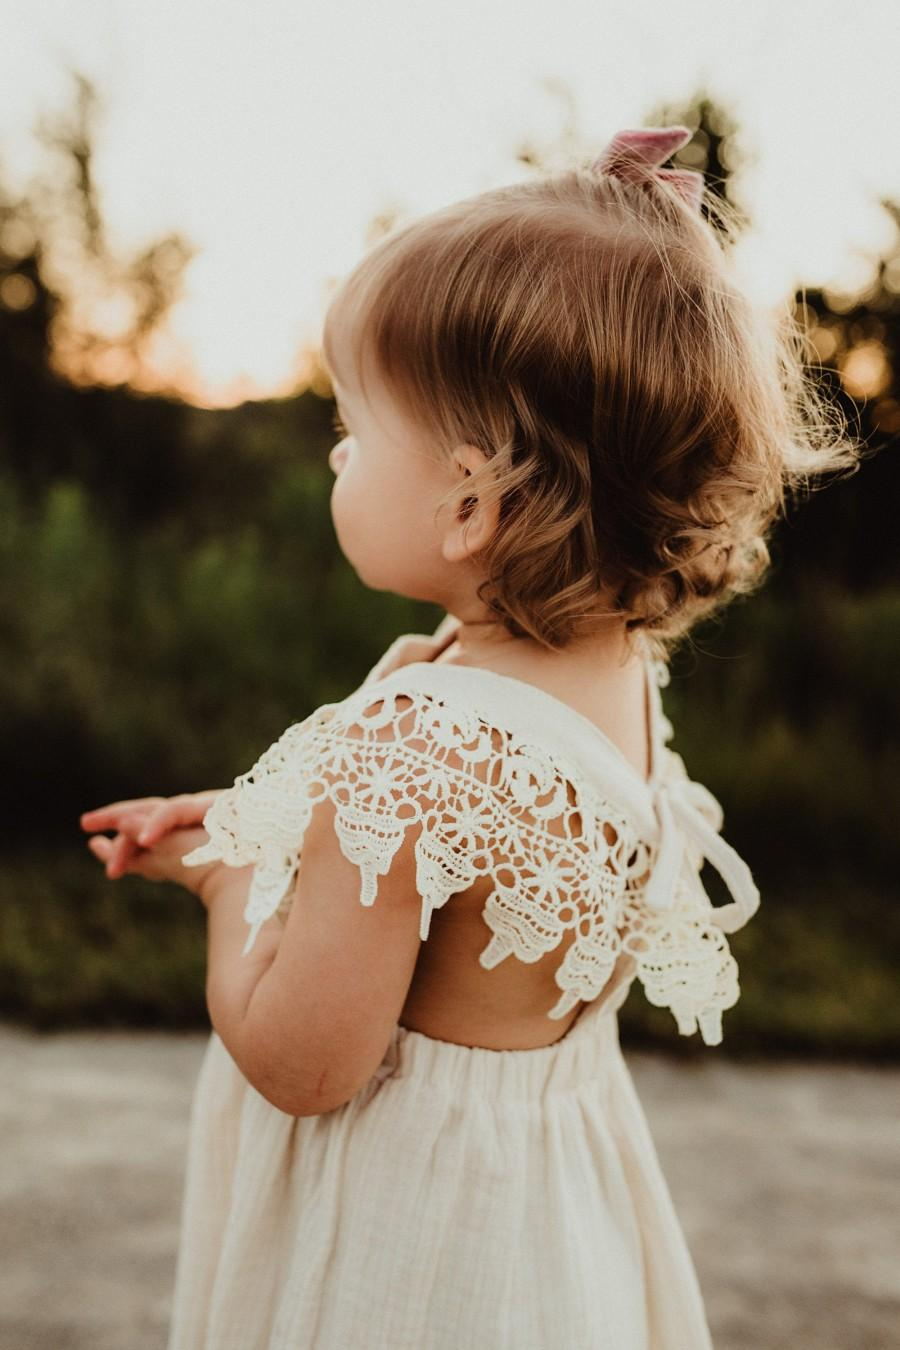 Wedding - Boho Lace Flower Girl Dresses, Baby Gift, Linen Girls Dresses, Bohemian Beach Wedding Infant Dresses